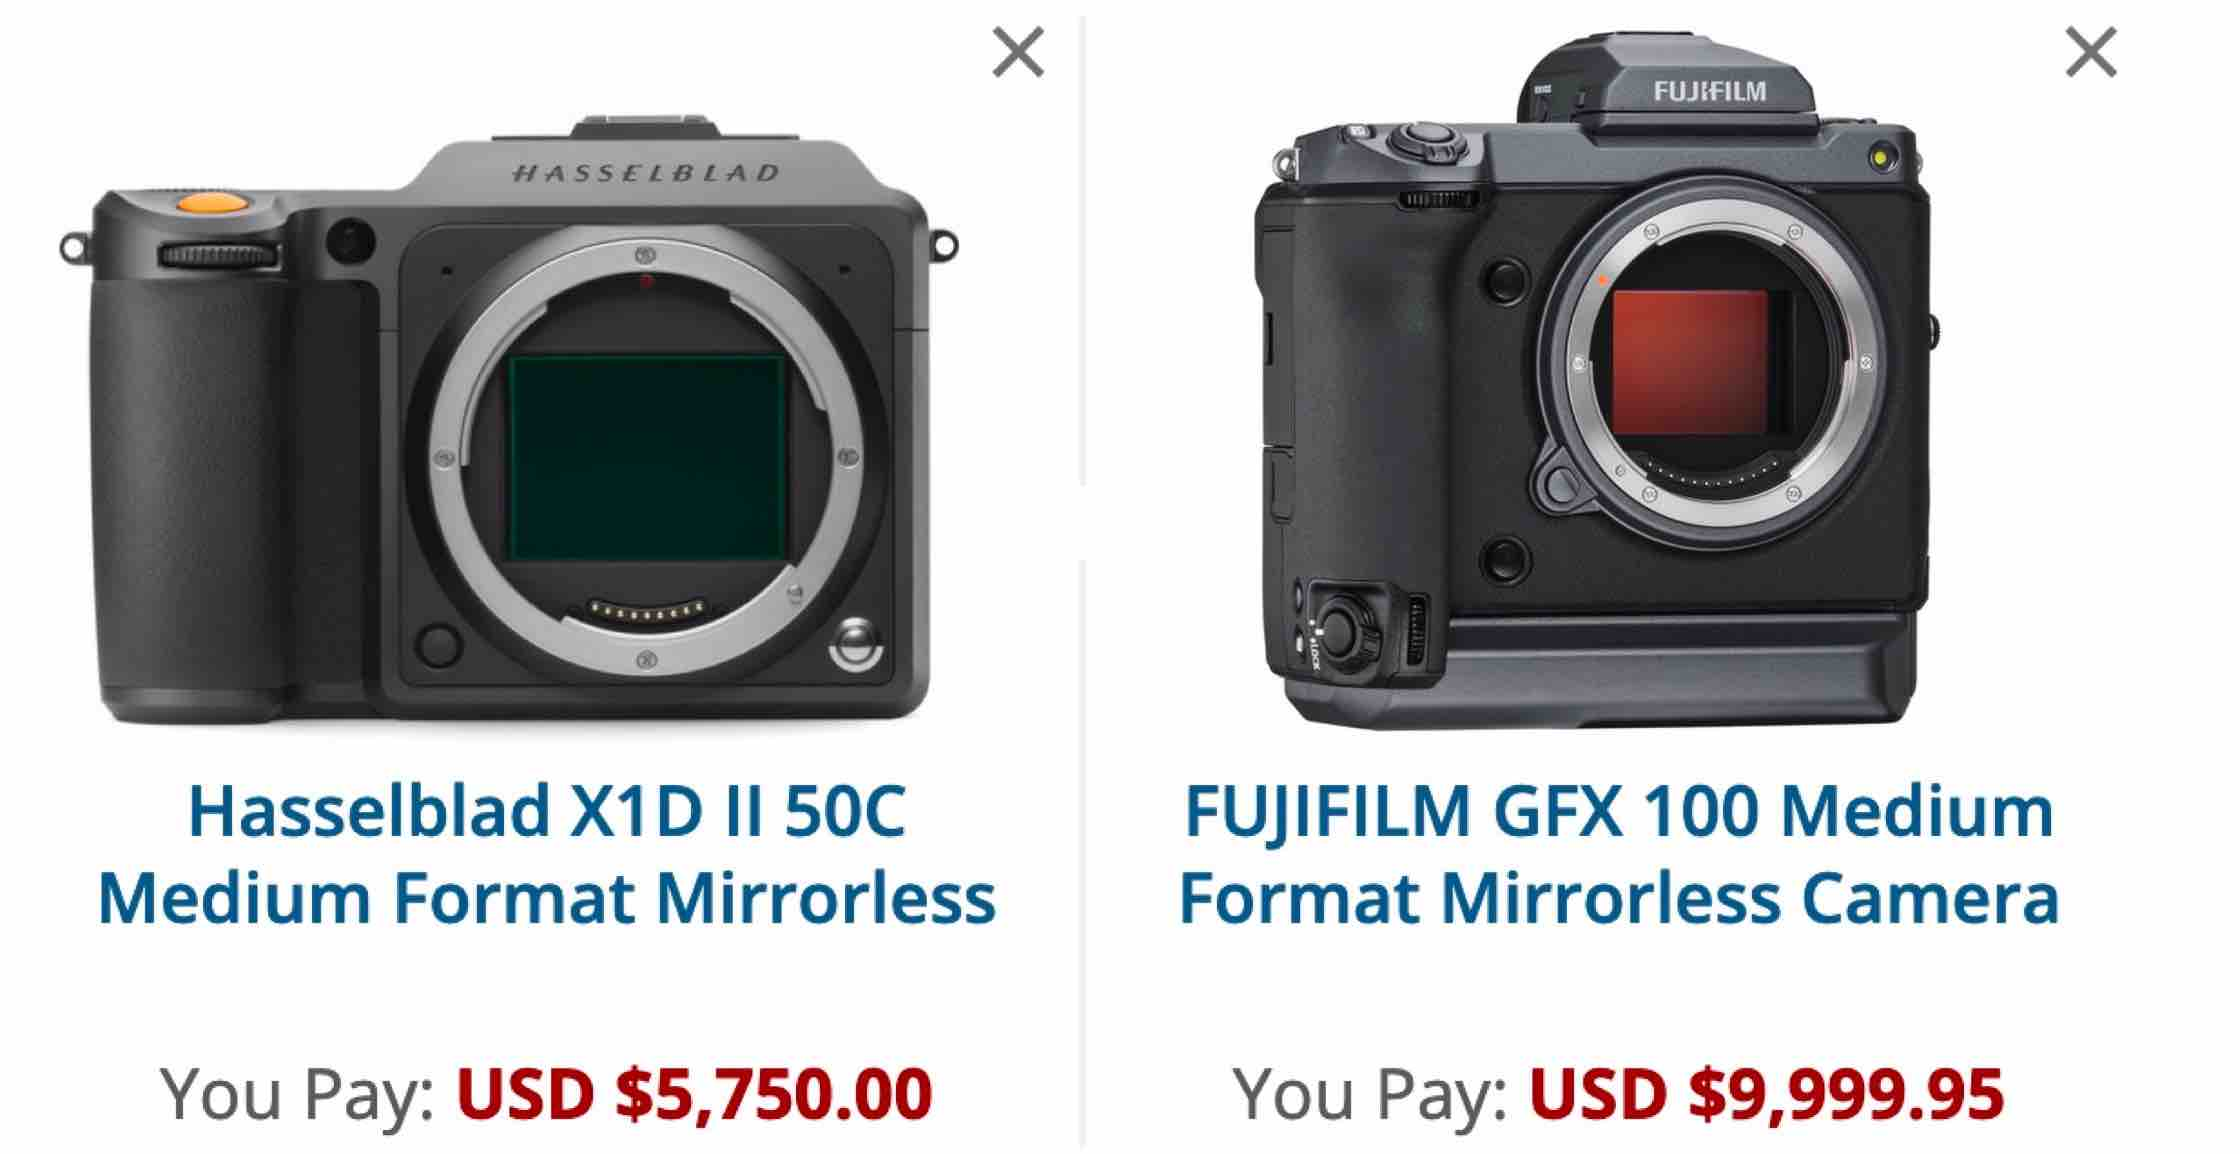 Let's Get Serious: Hasselblad X1D II 50C not a Fujifilm GFX